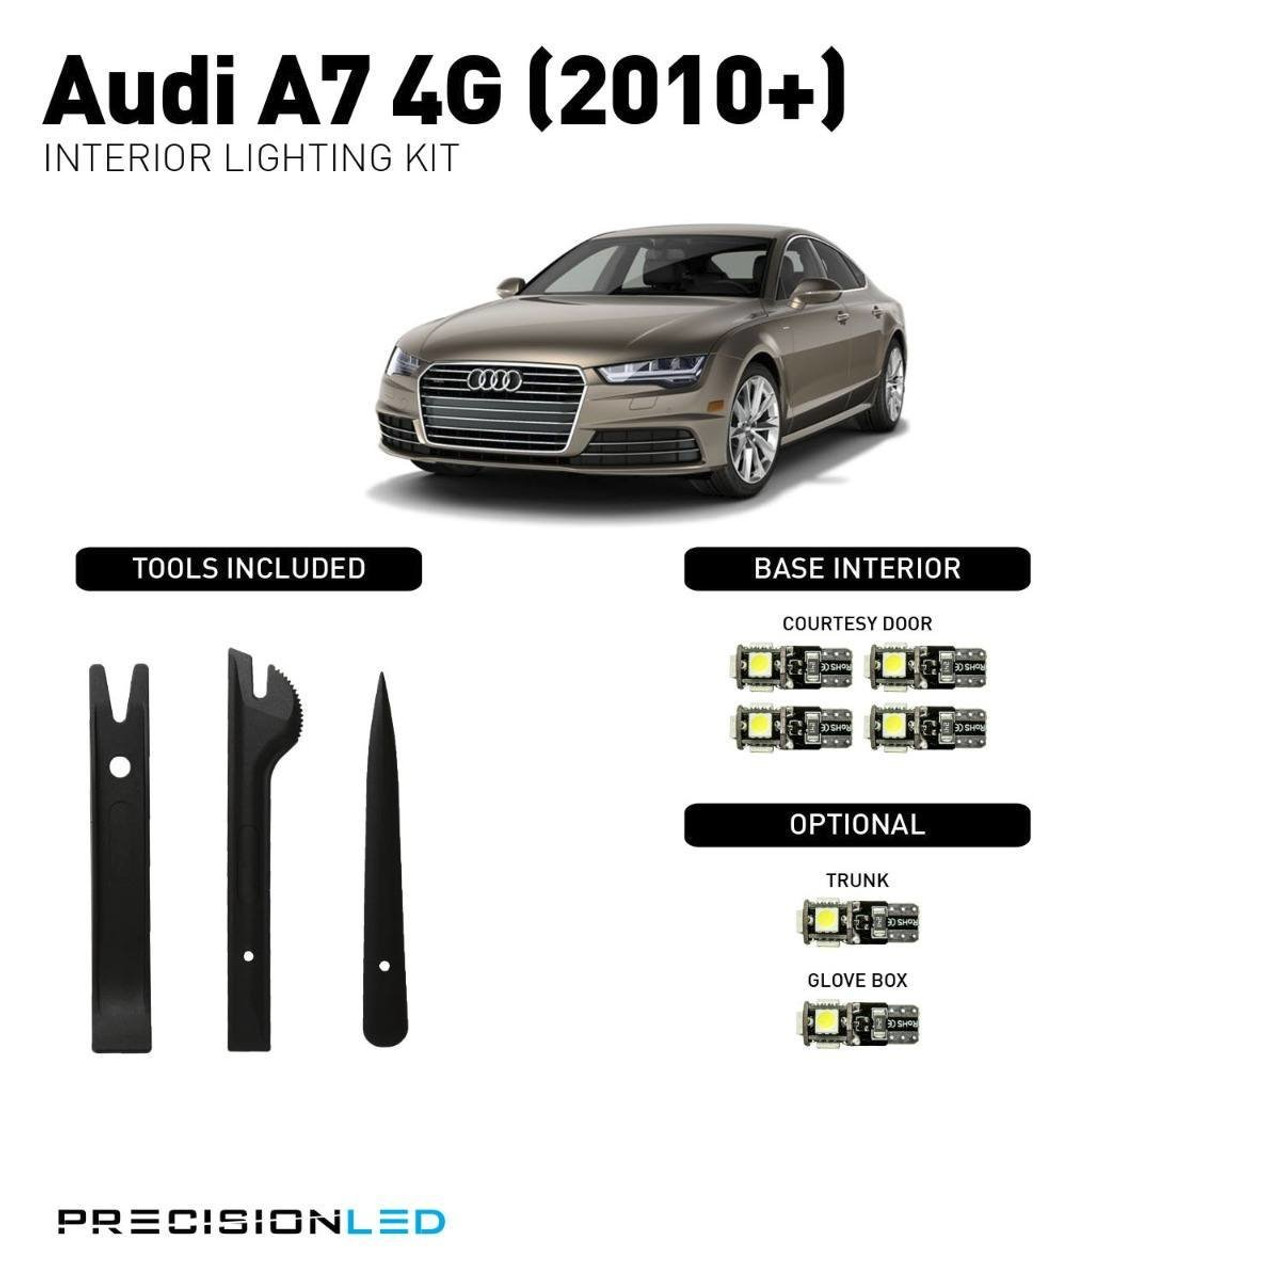 Audi A7 4G LED Interior Package (2010+)